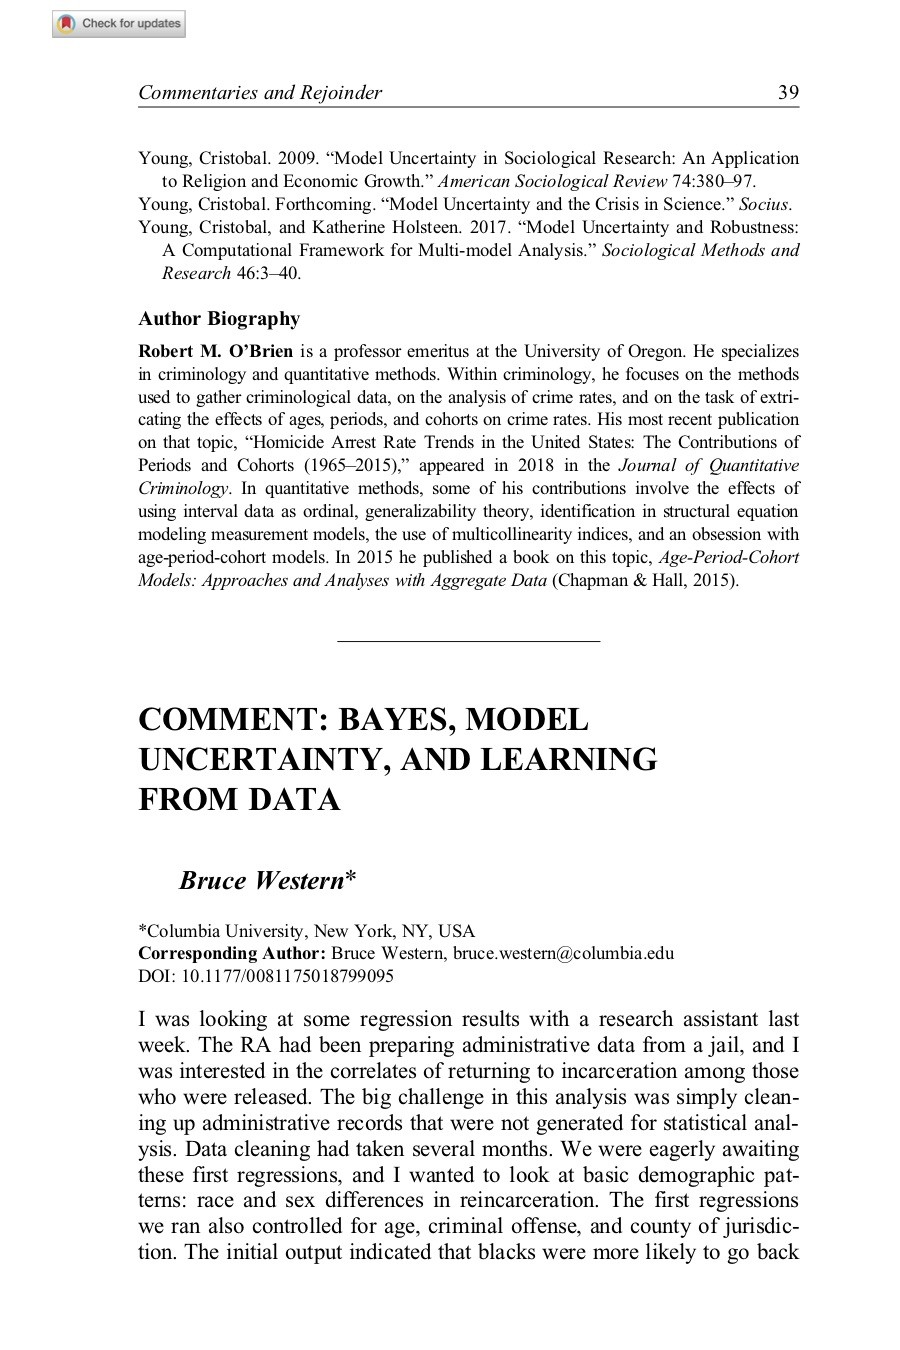 Bayes, Model Uncertainty, and Learning from Data